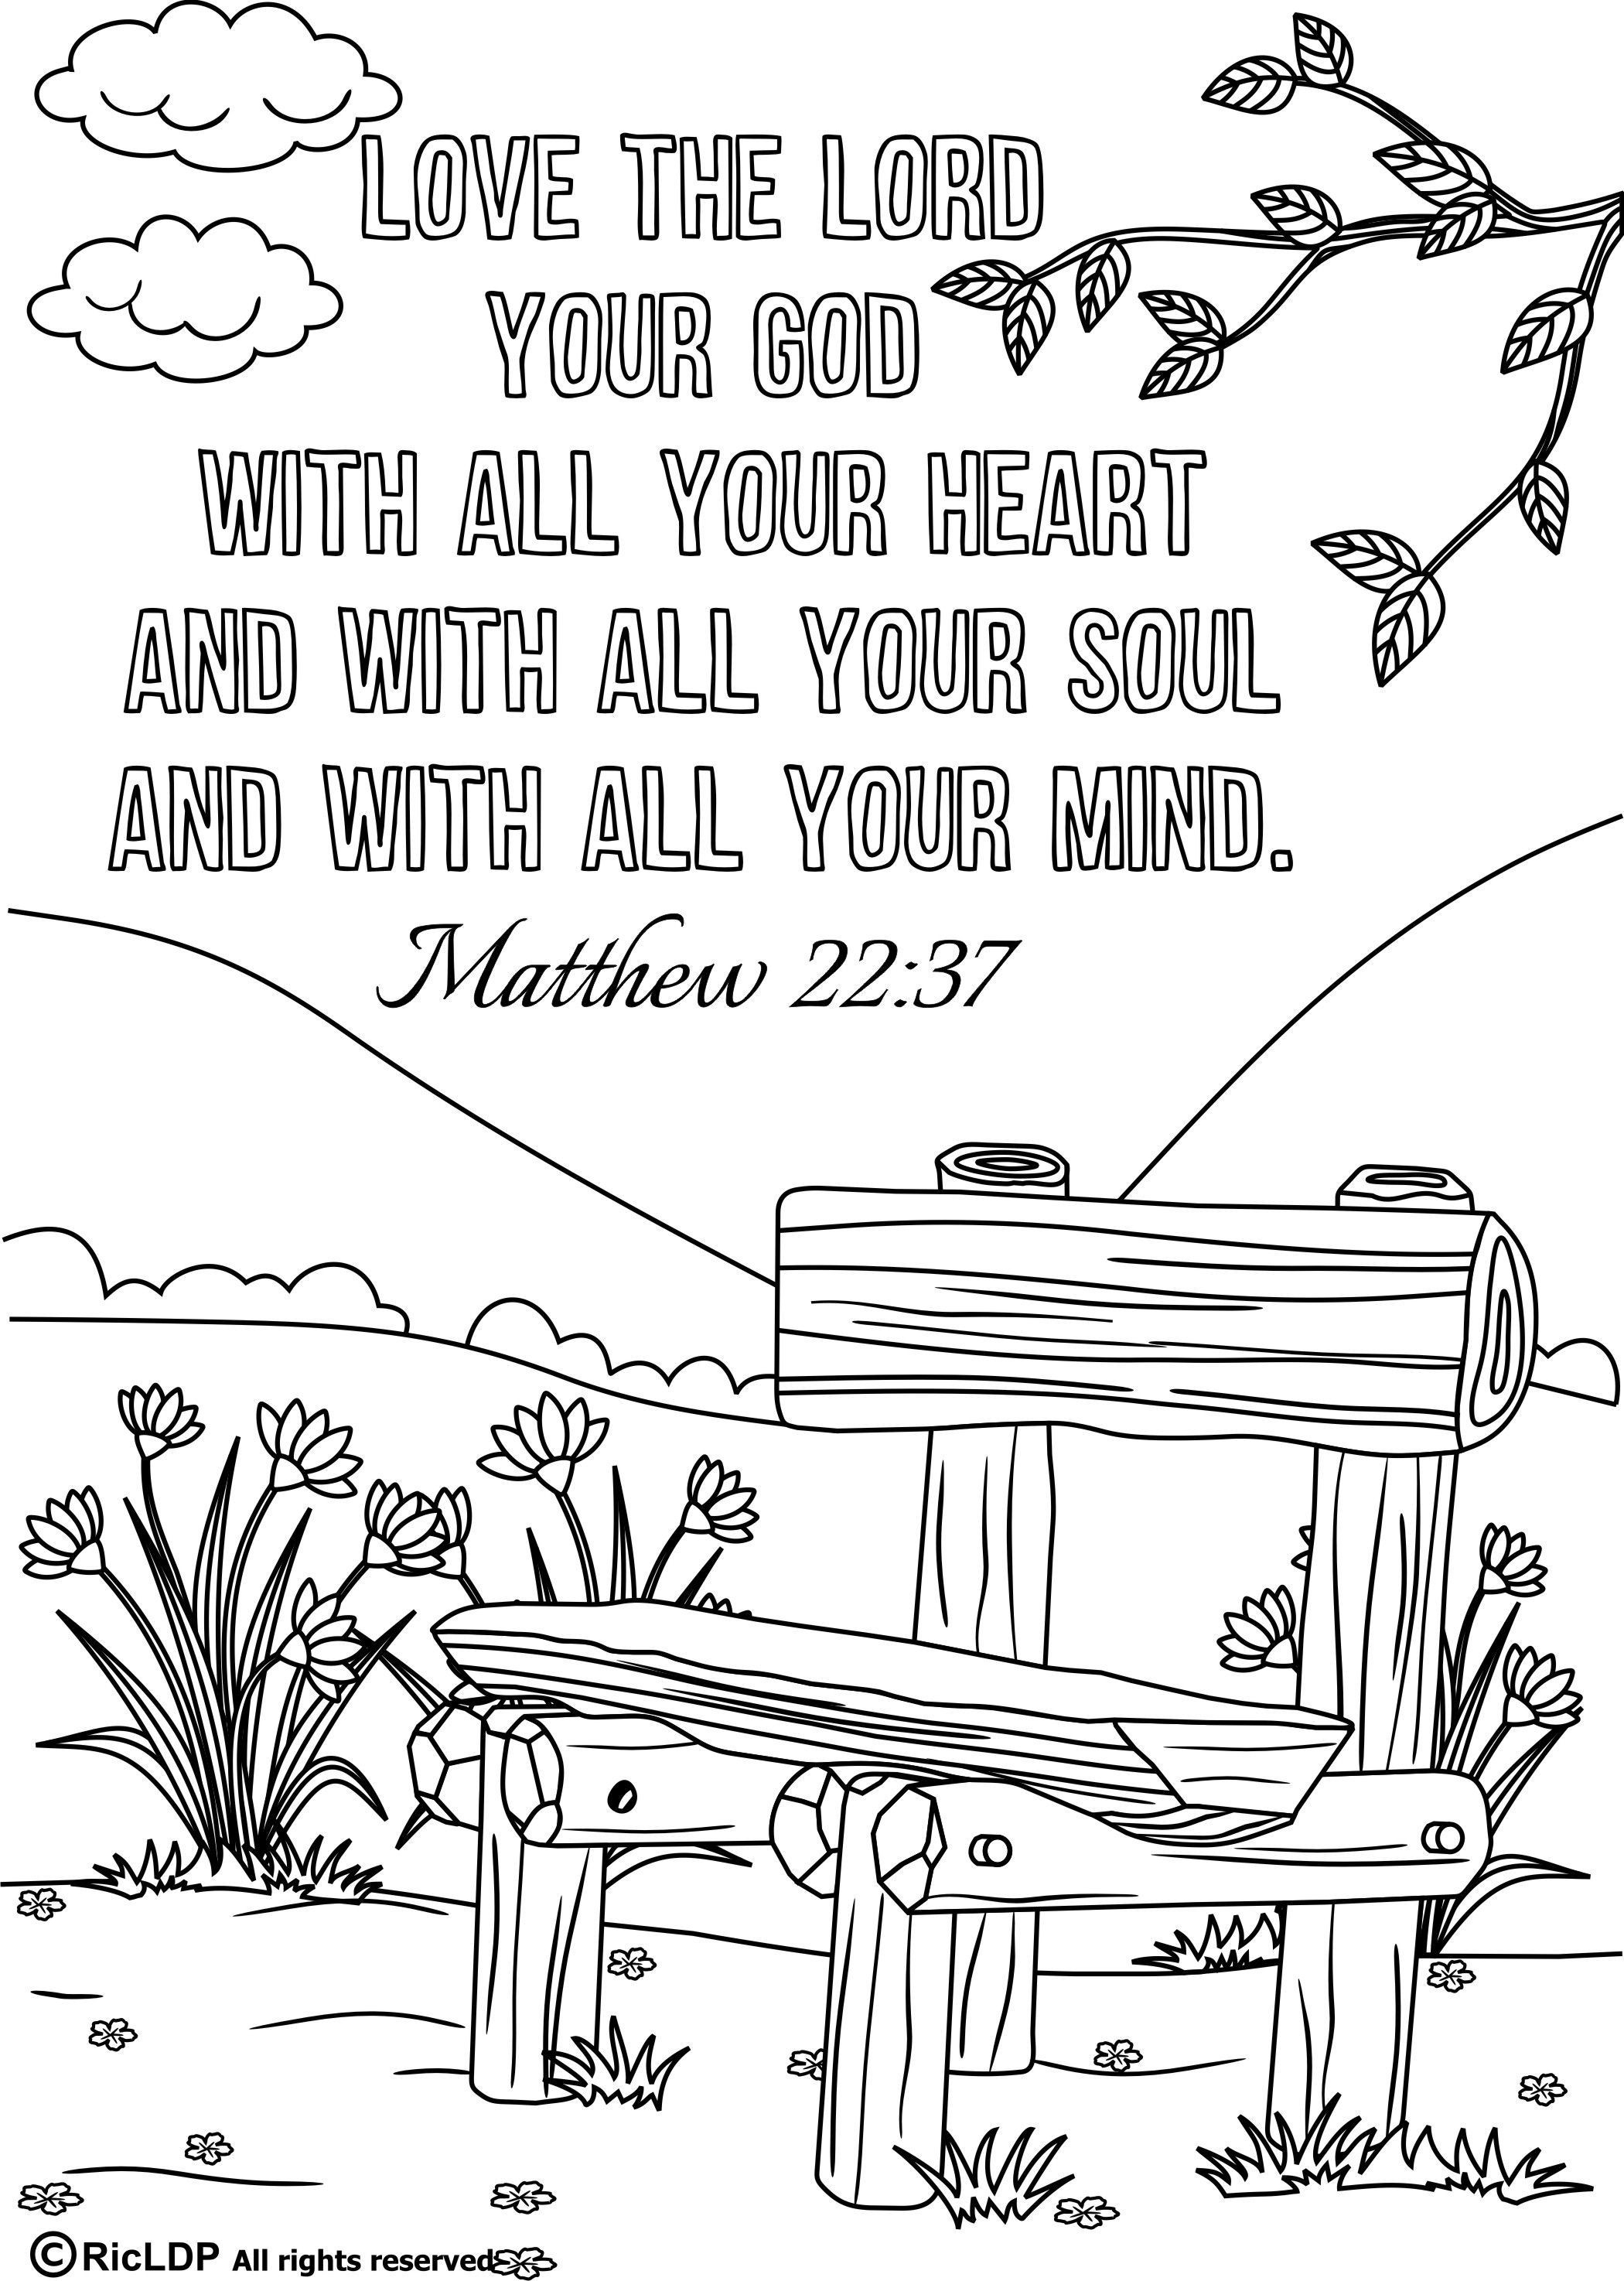 coloring pages with bible verses Download-free coloring pages 15 Printable Bible Verse Coloring Pages Verses Bible And Pdf of 9-d